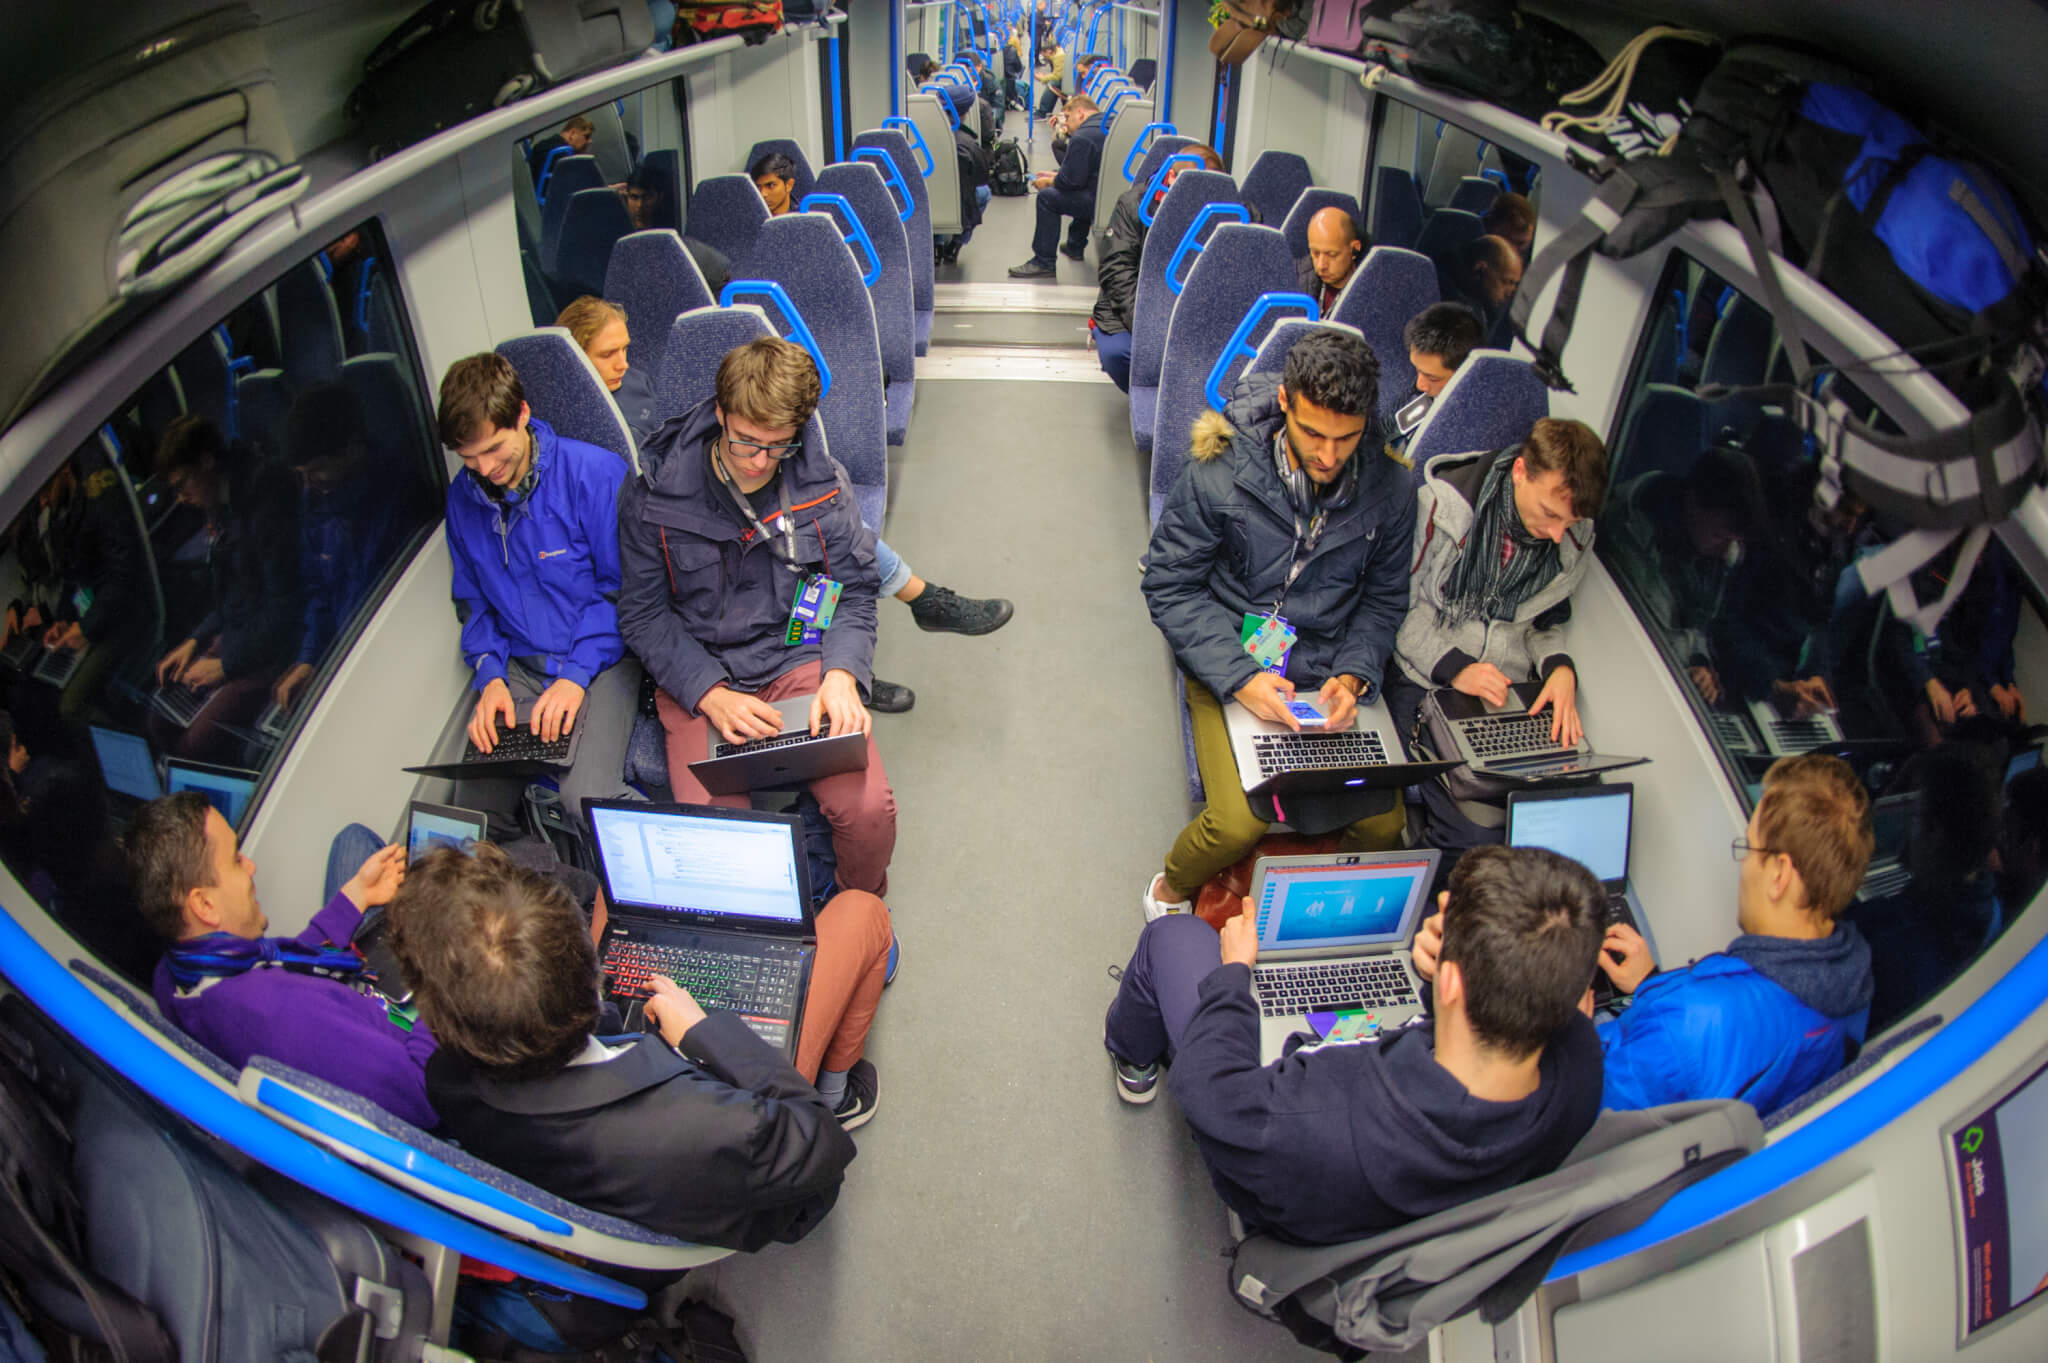 HackTrain 4.0 addressing their challenges on their train